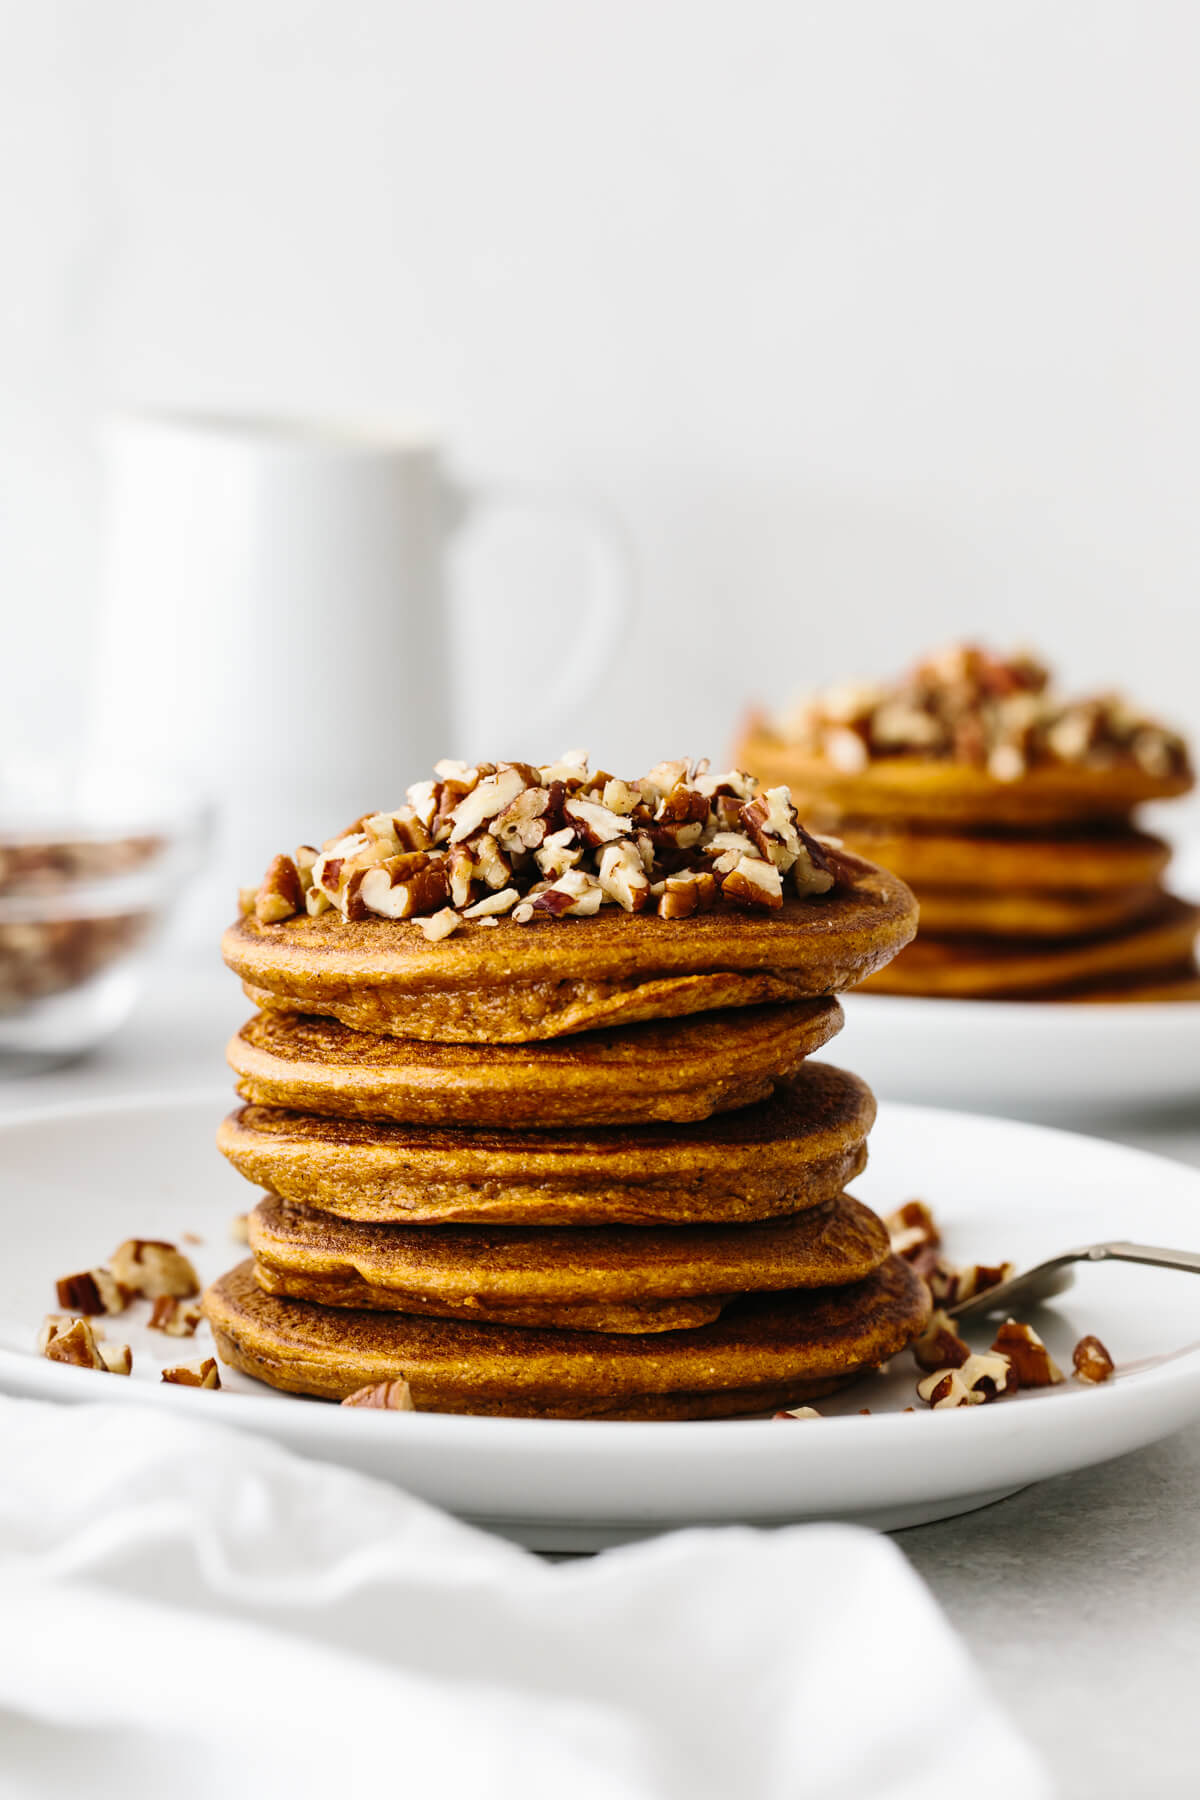 A stack of paleo pumpkin pancakes on a plate, topped with chopped pecans.